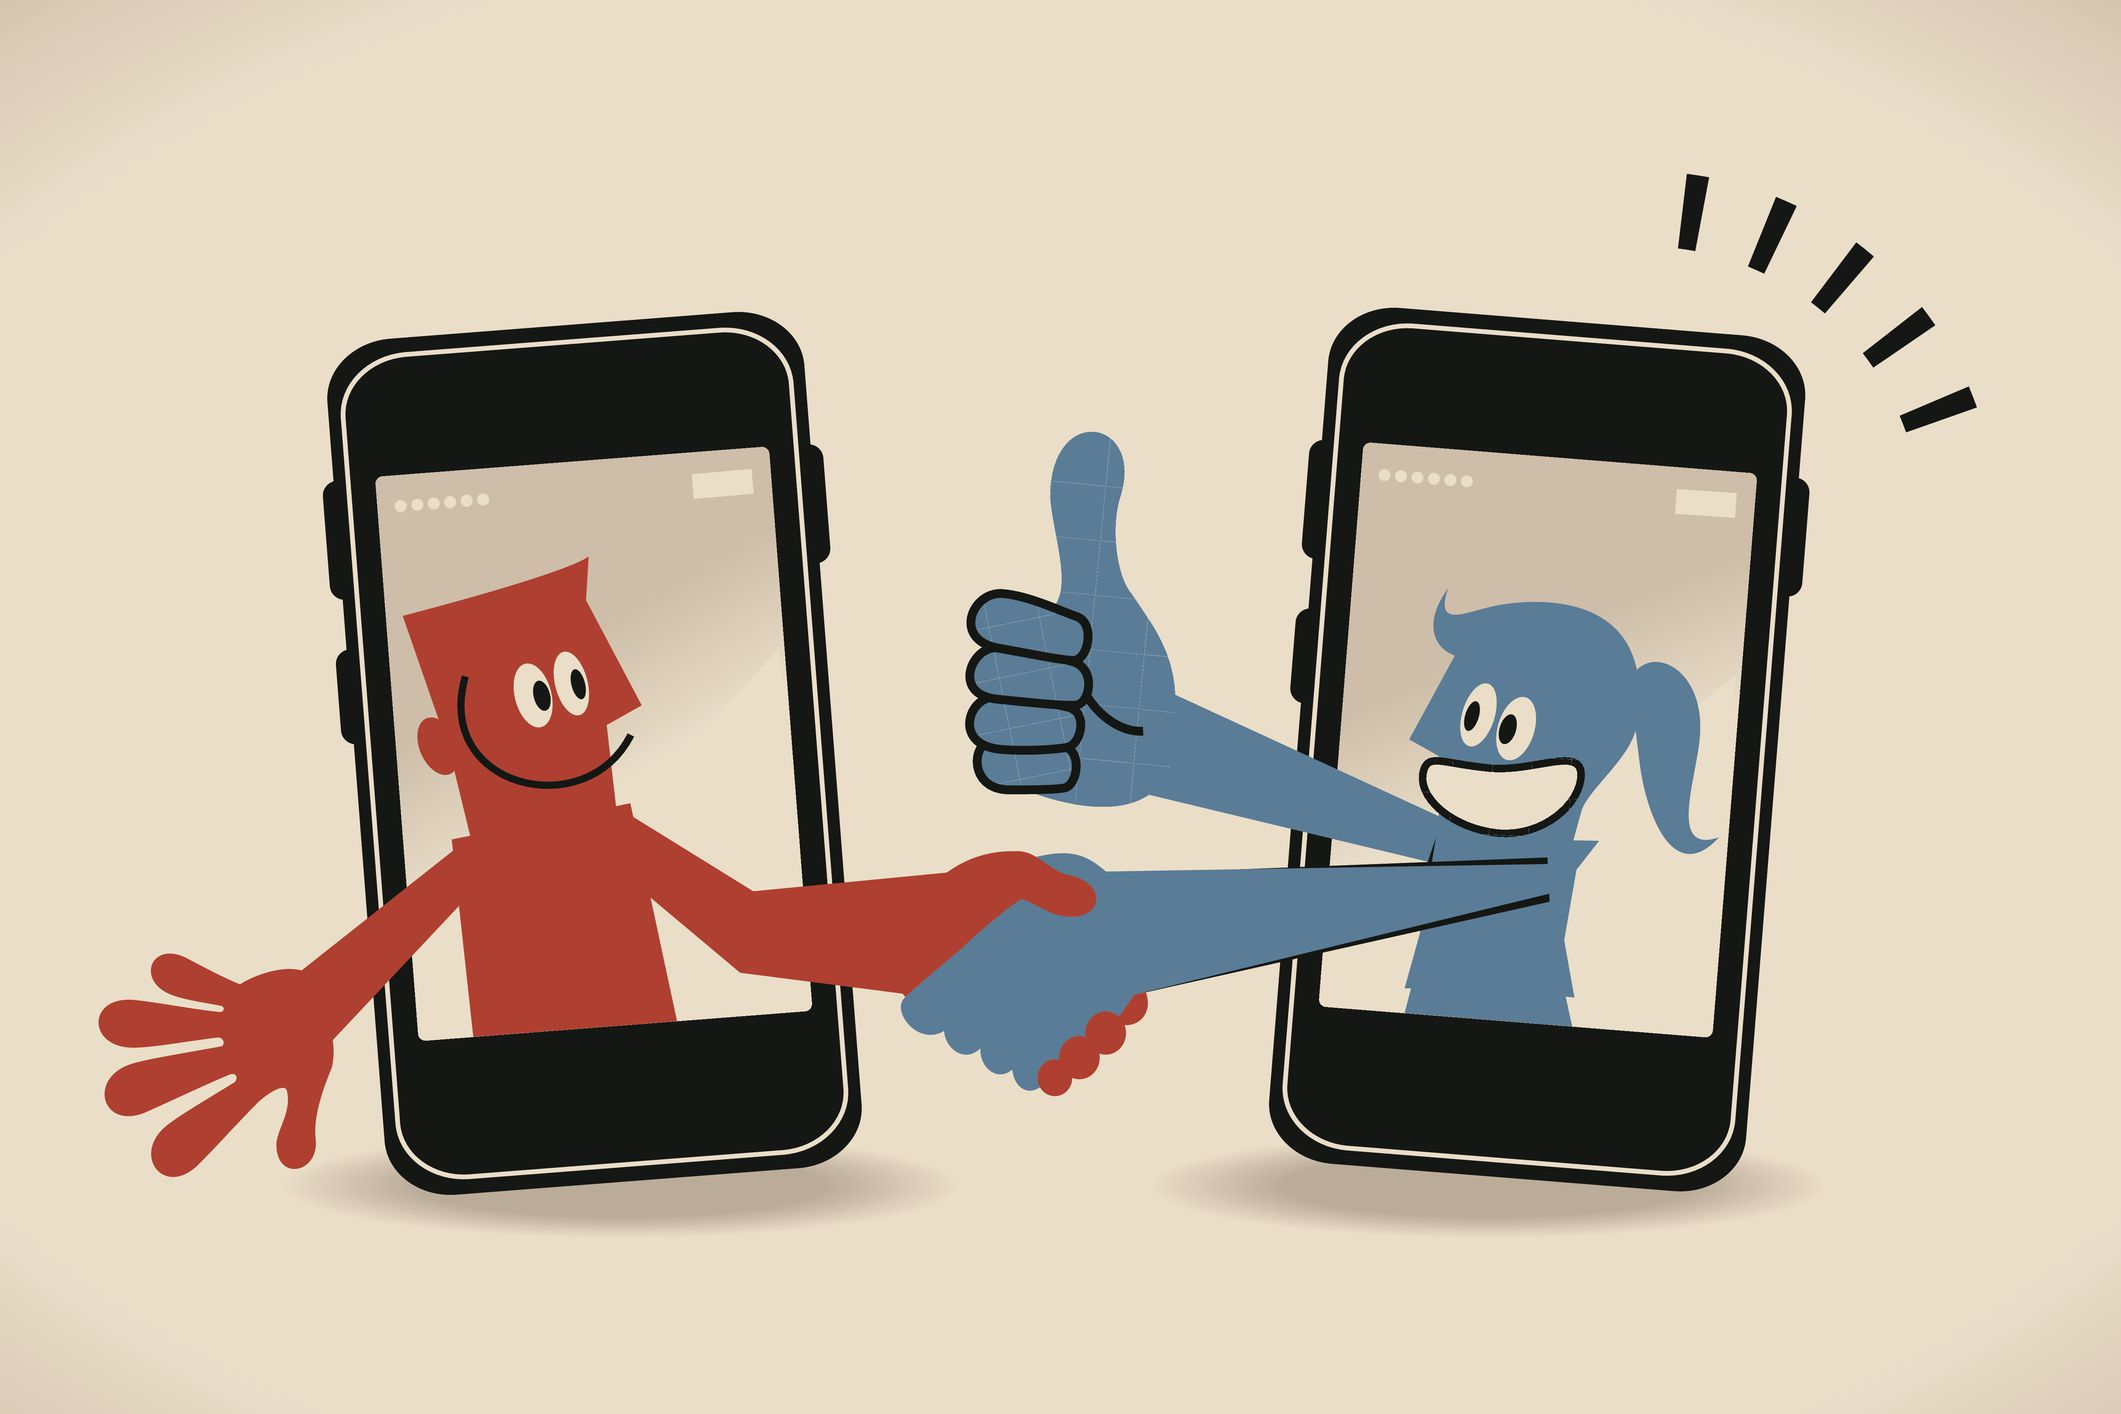 Illustration of one person thanking another though a smartphone.